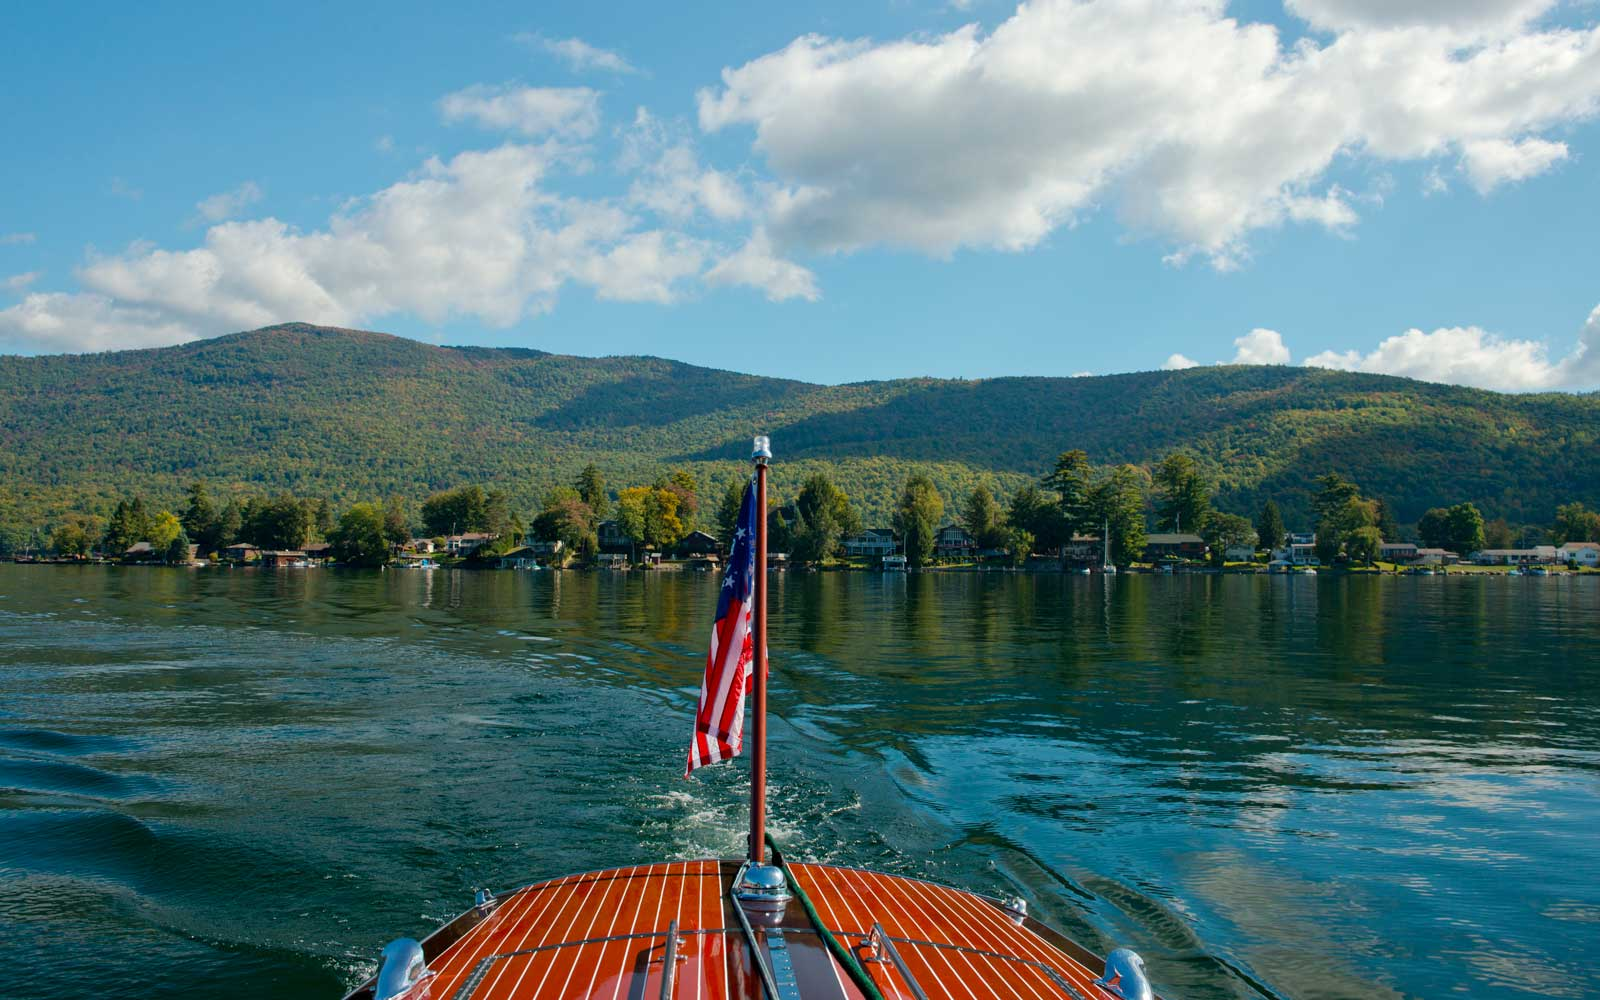 Lake George; The Adirondack Mountains, New York State, U.S.A.